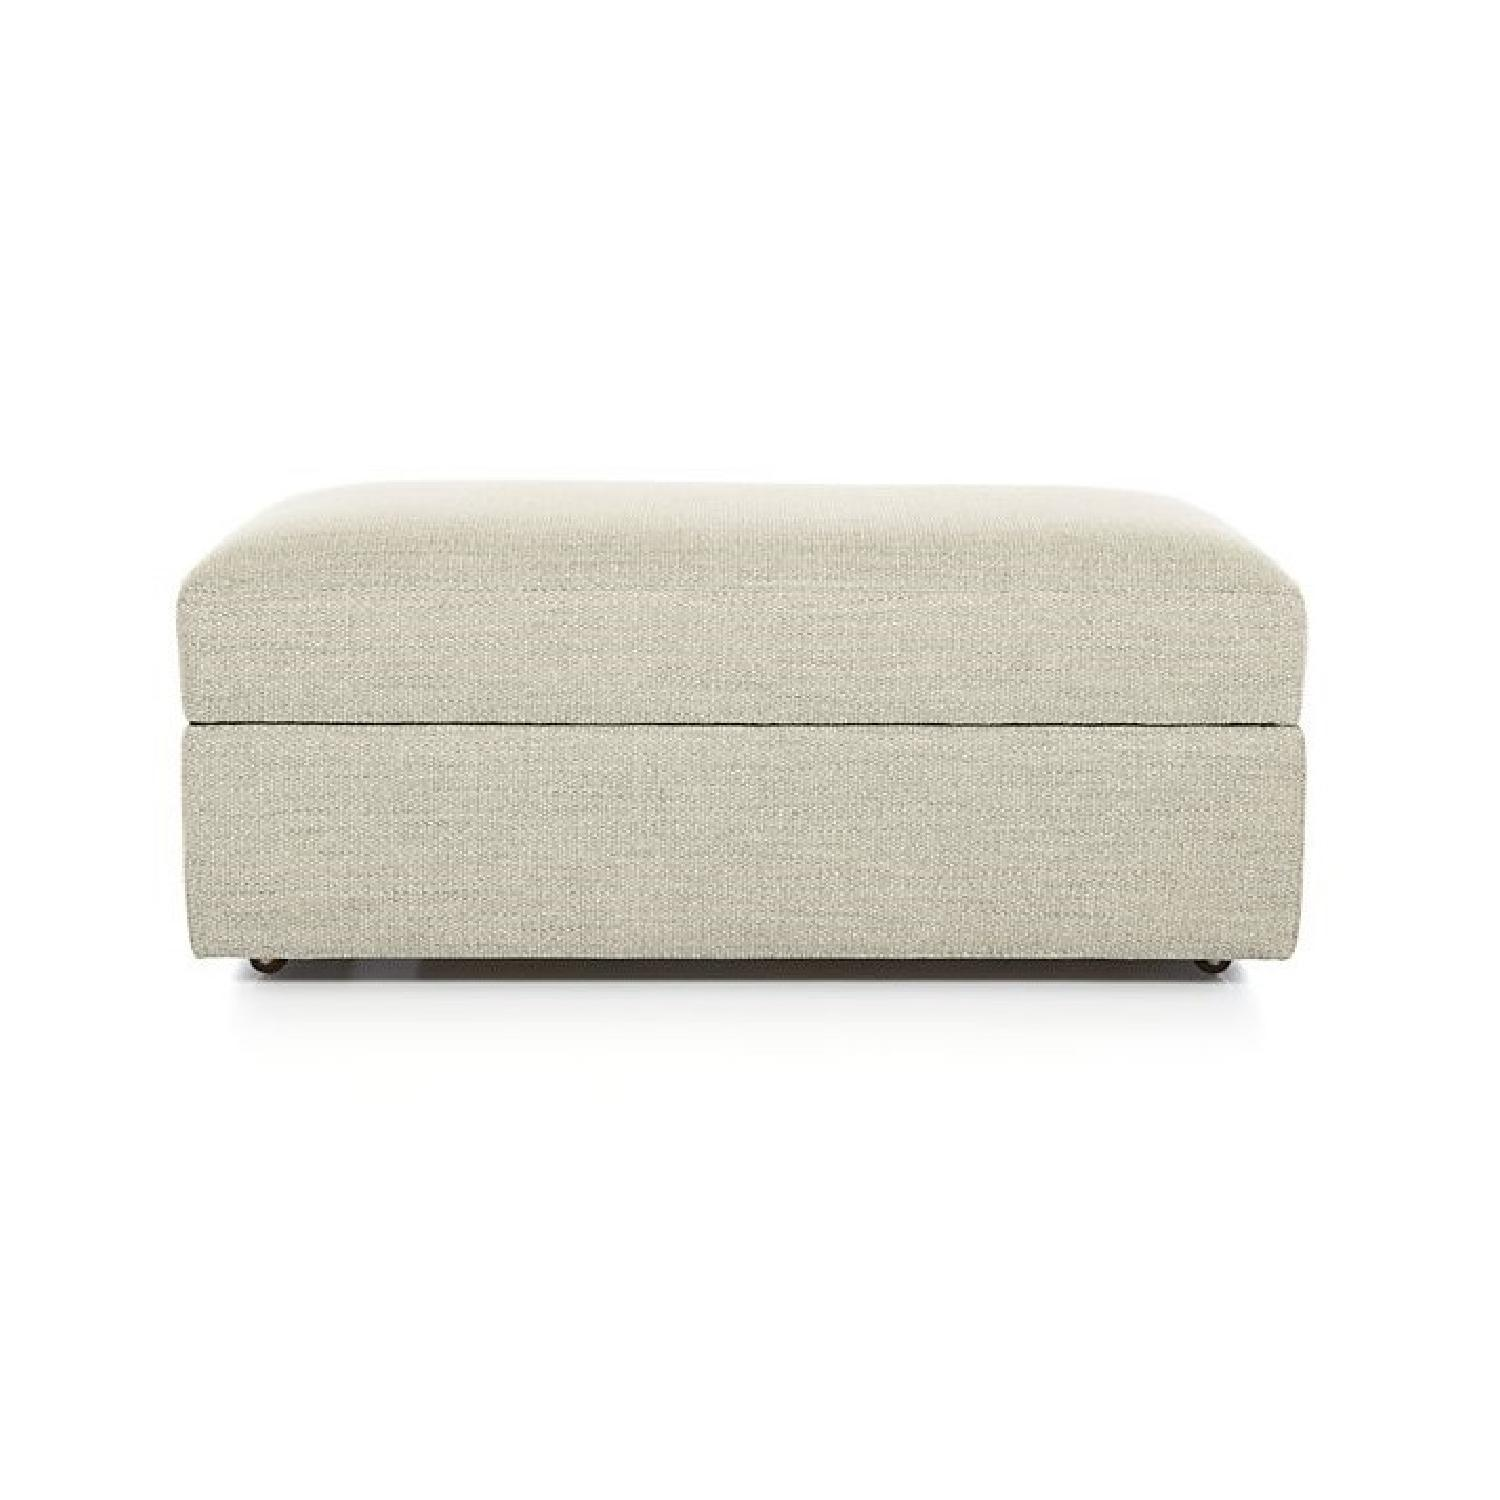 Crate & Barrel Lounge II Ottoman and a Half w/ Casters - image-0